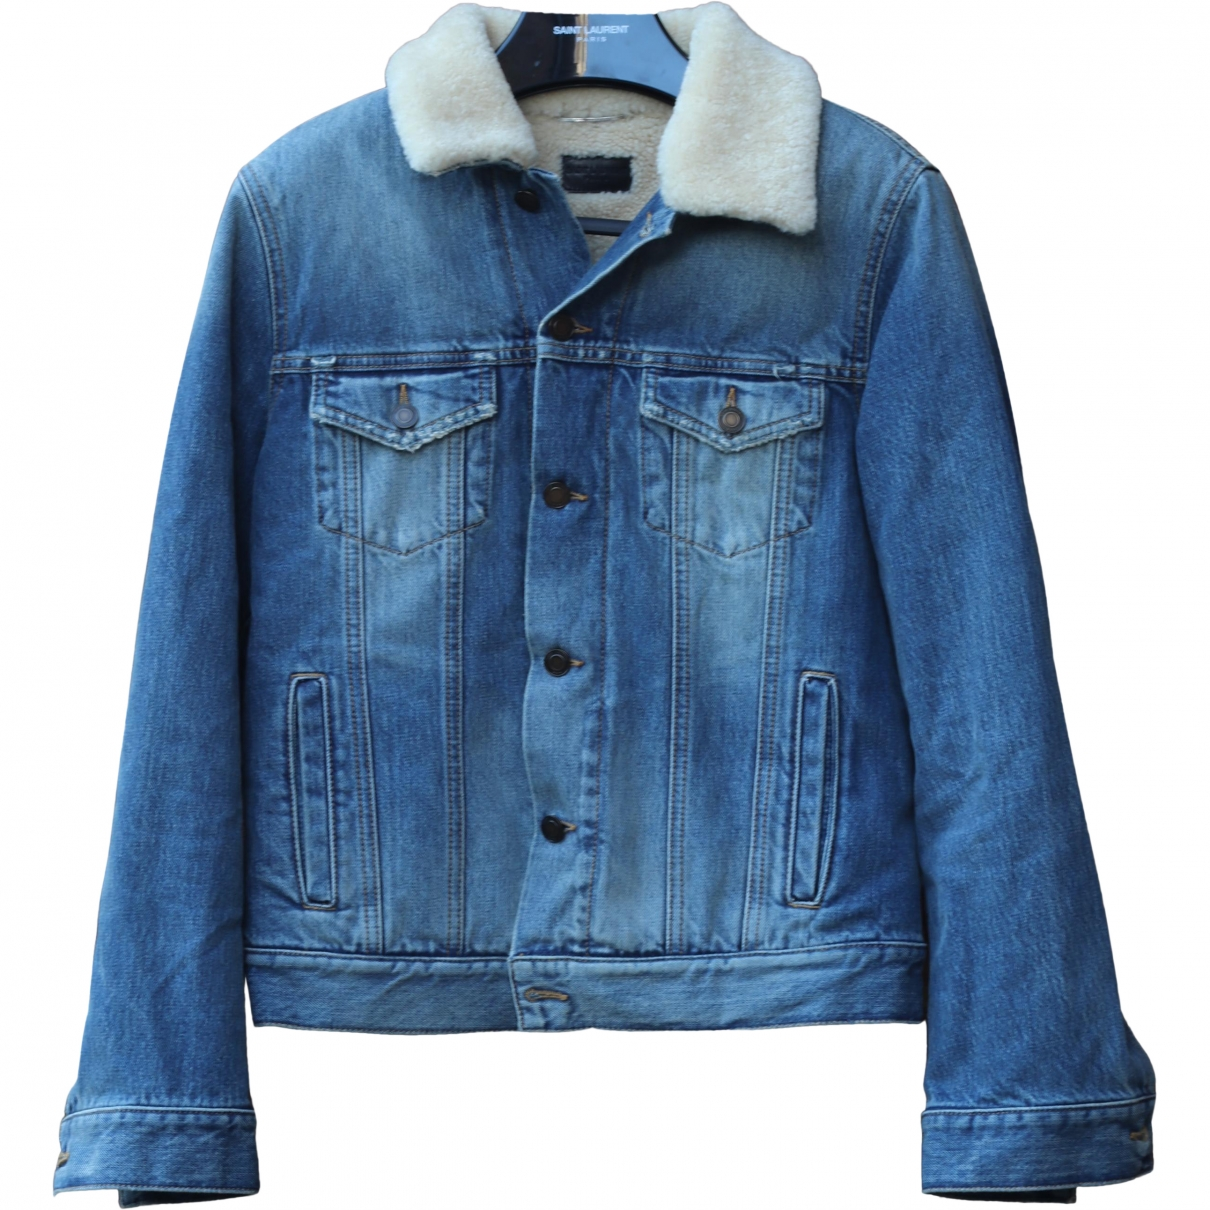 Saint Laurent \N Jacke in  Blau Denim - Jeans